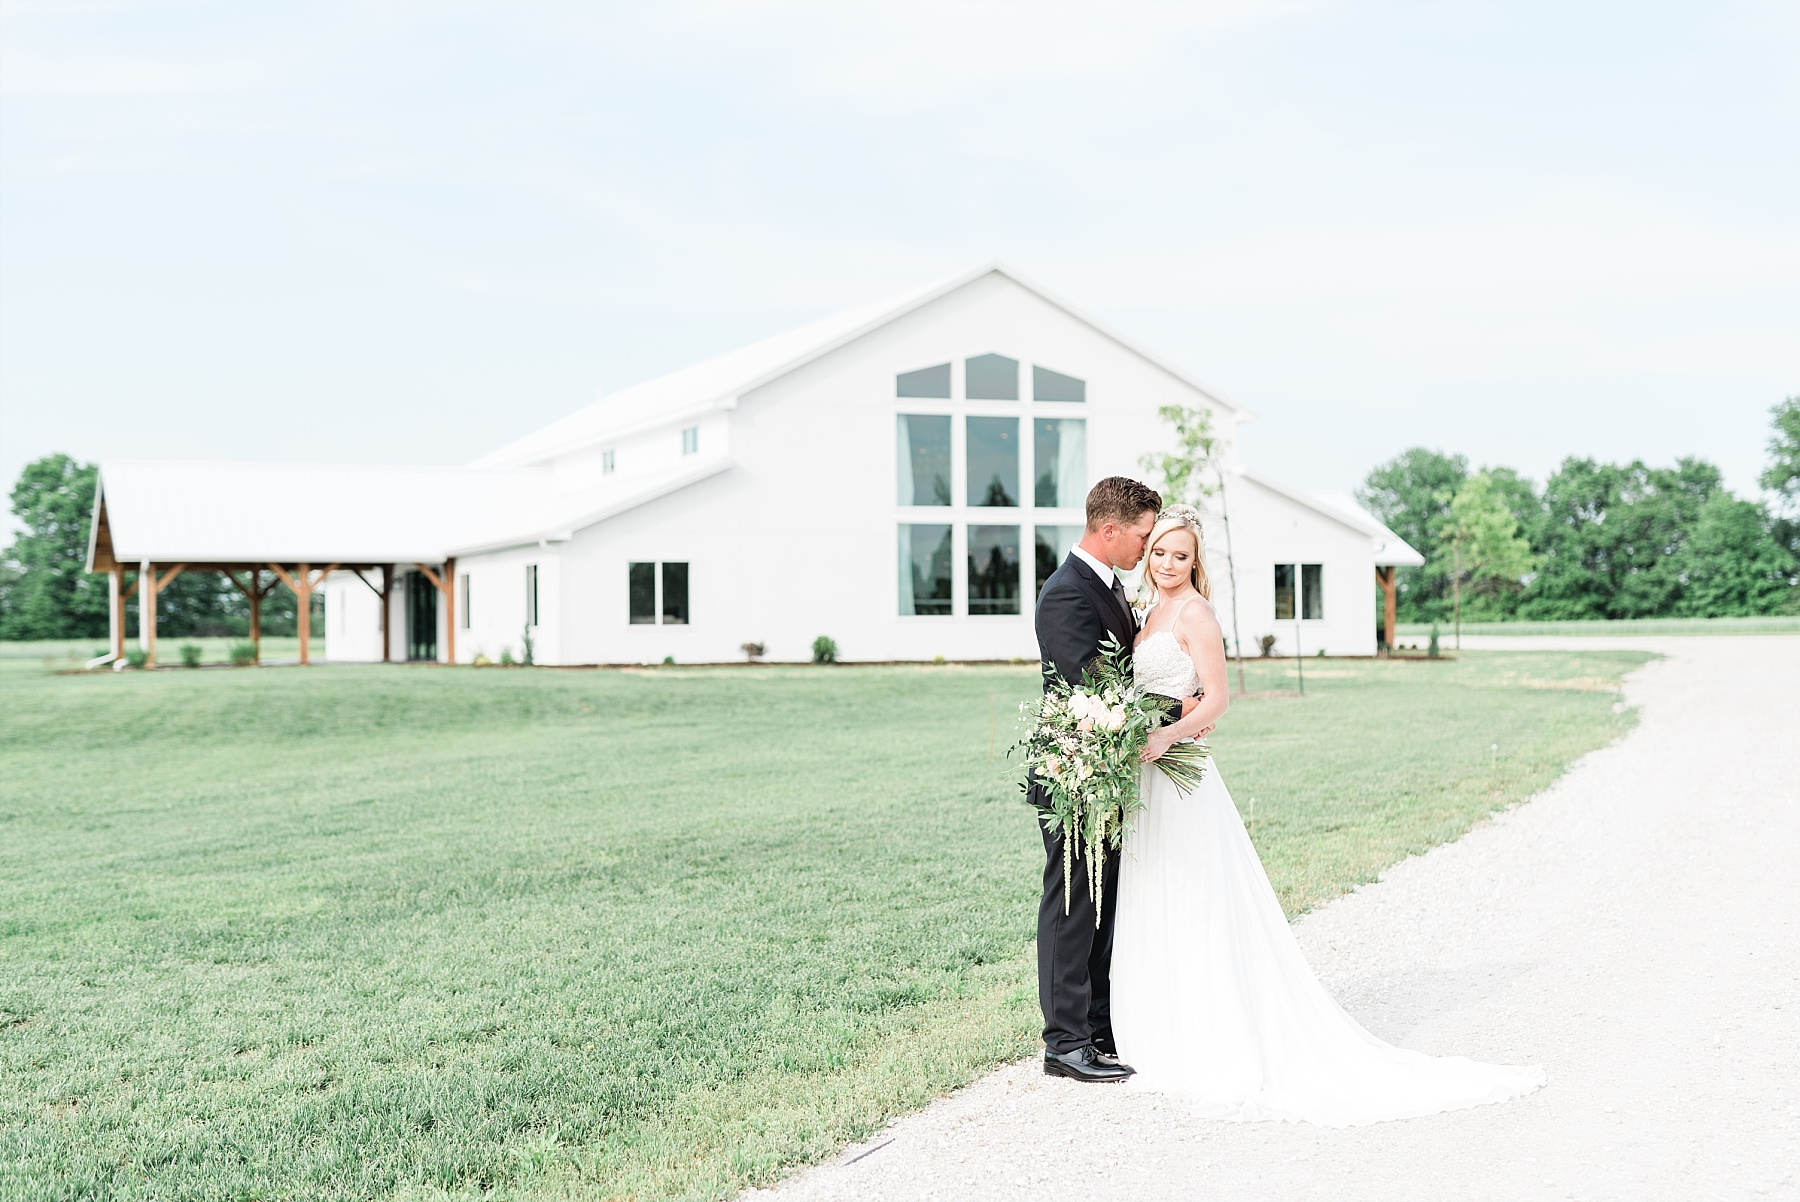 Textural Organic Wedding in All White Venue by Kelsi Kliethermes Wedding Photographer - Missouri, Midwest, and Destinations_0055.jpg